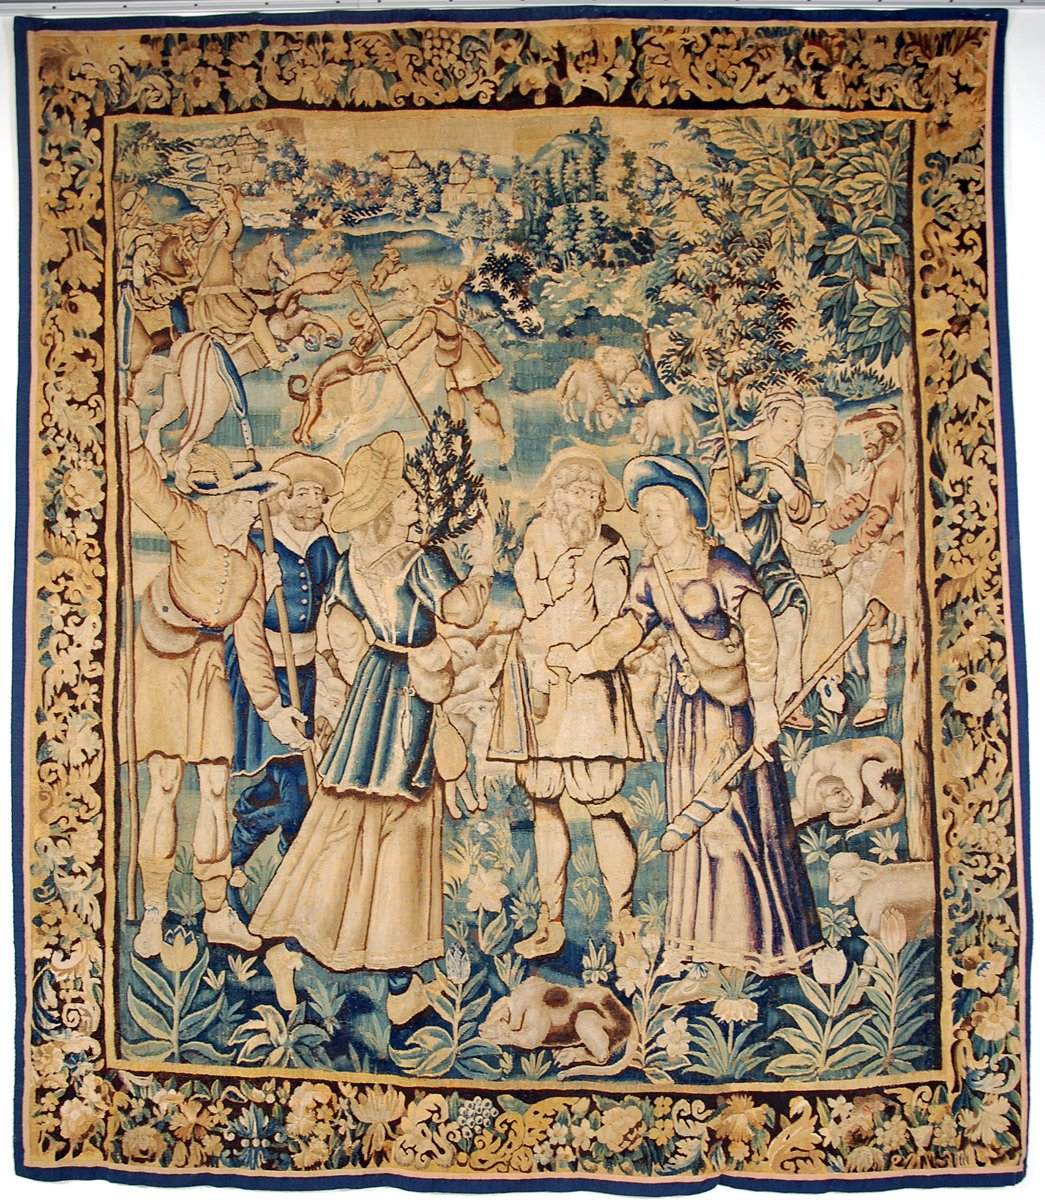 A Fine French 17th Century Tapestry